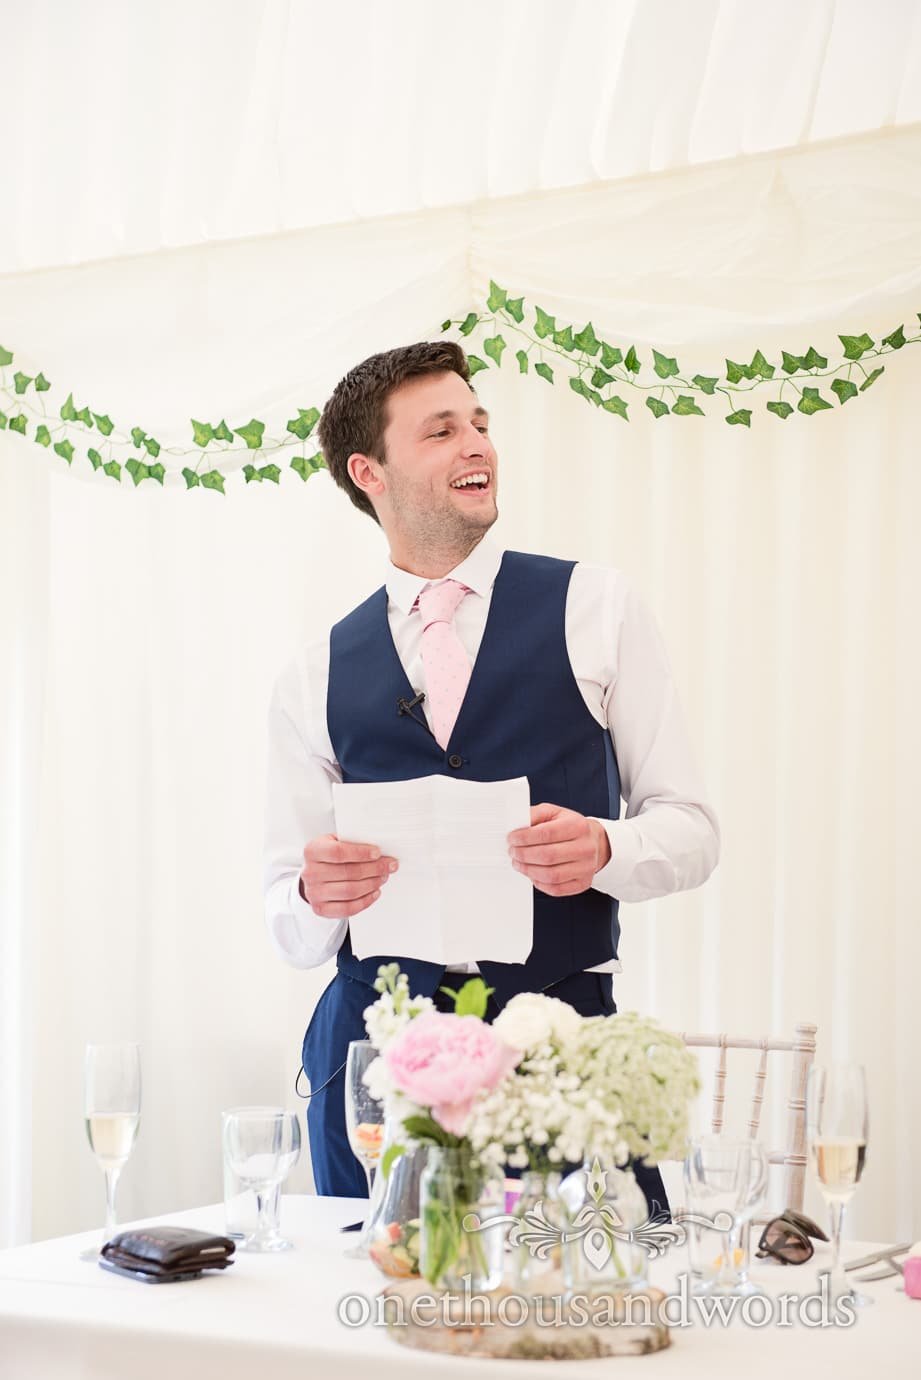 Best man makes wedding speech at country wedding marquee with flowers and ivy